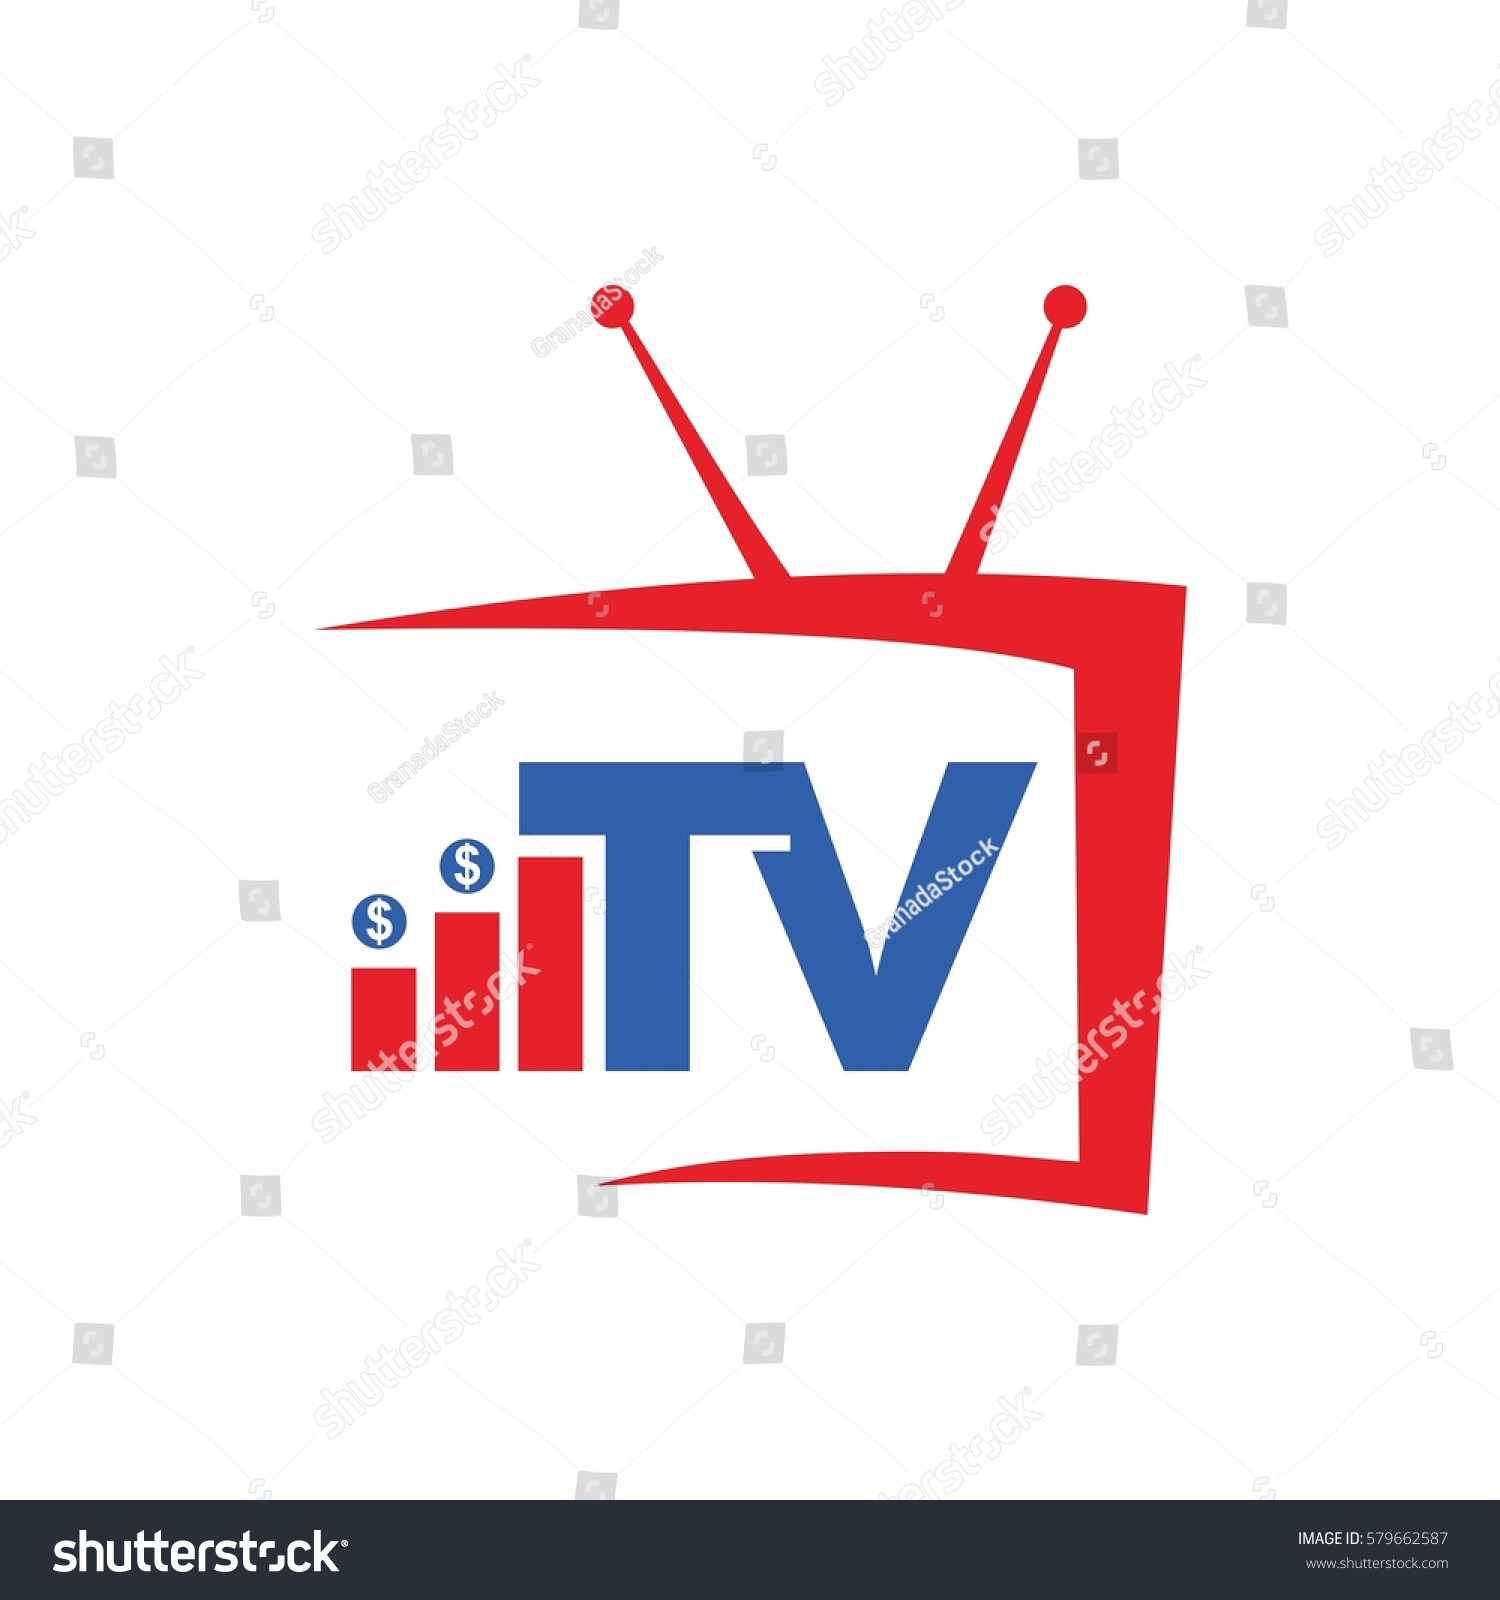 Tv Rating Vector Logo Design Stock Vector Royalty Free 579662587